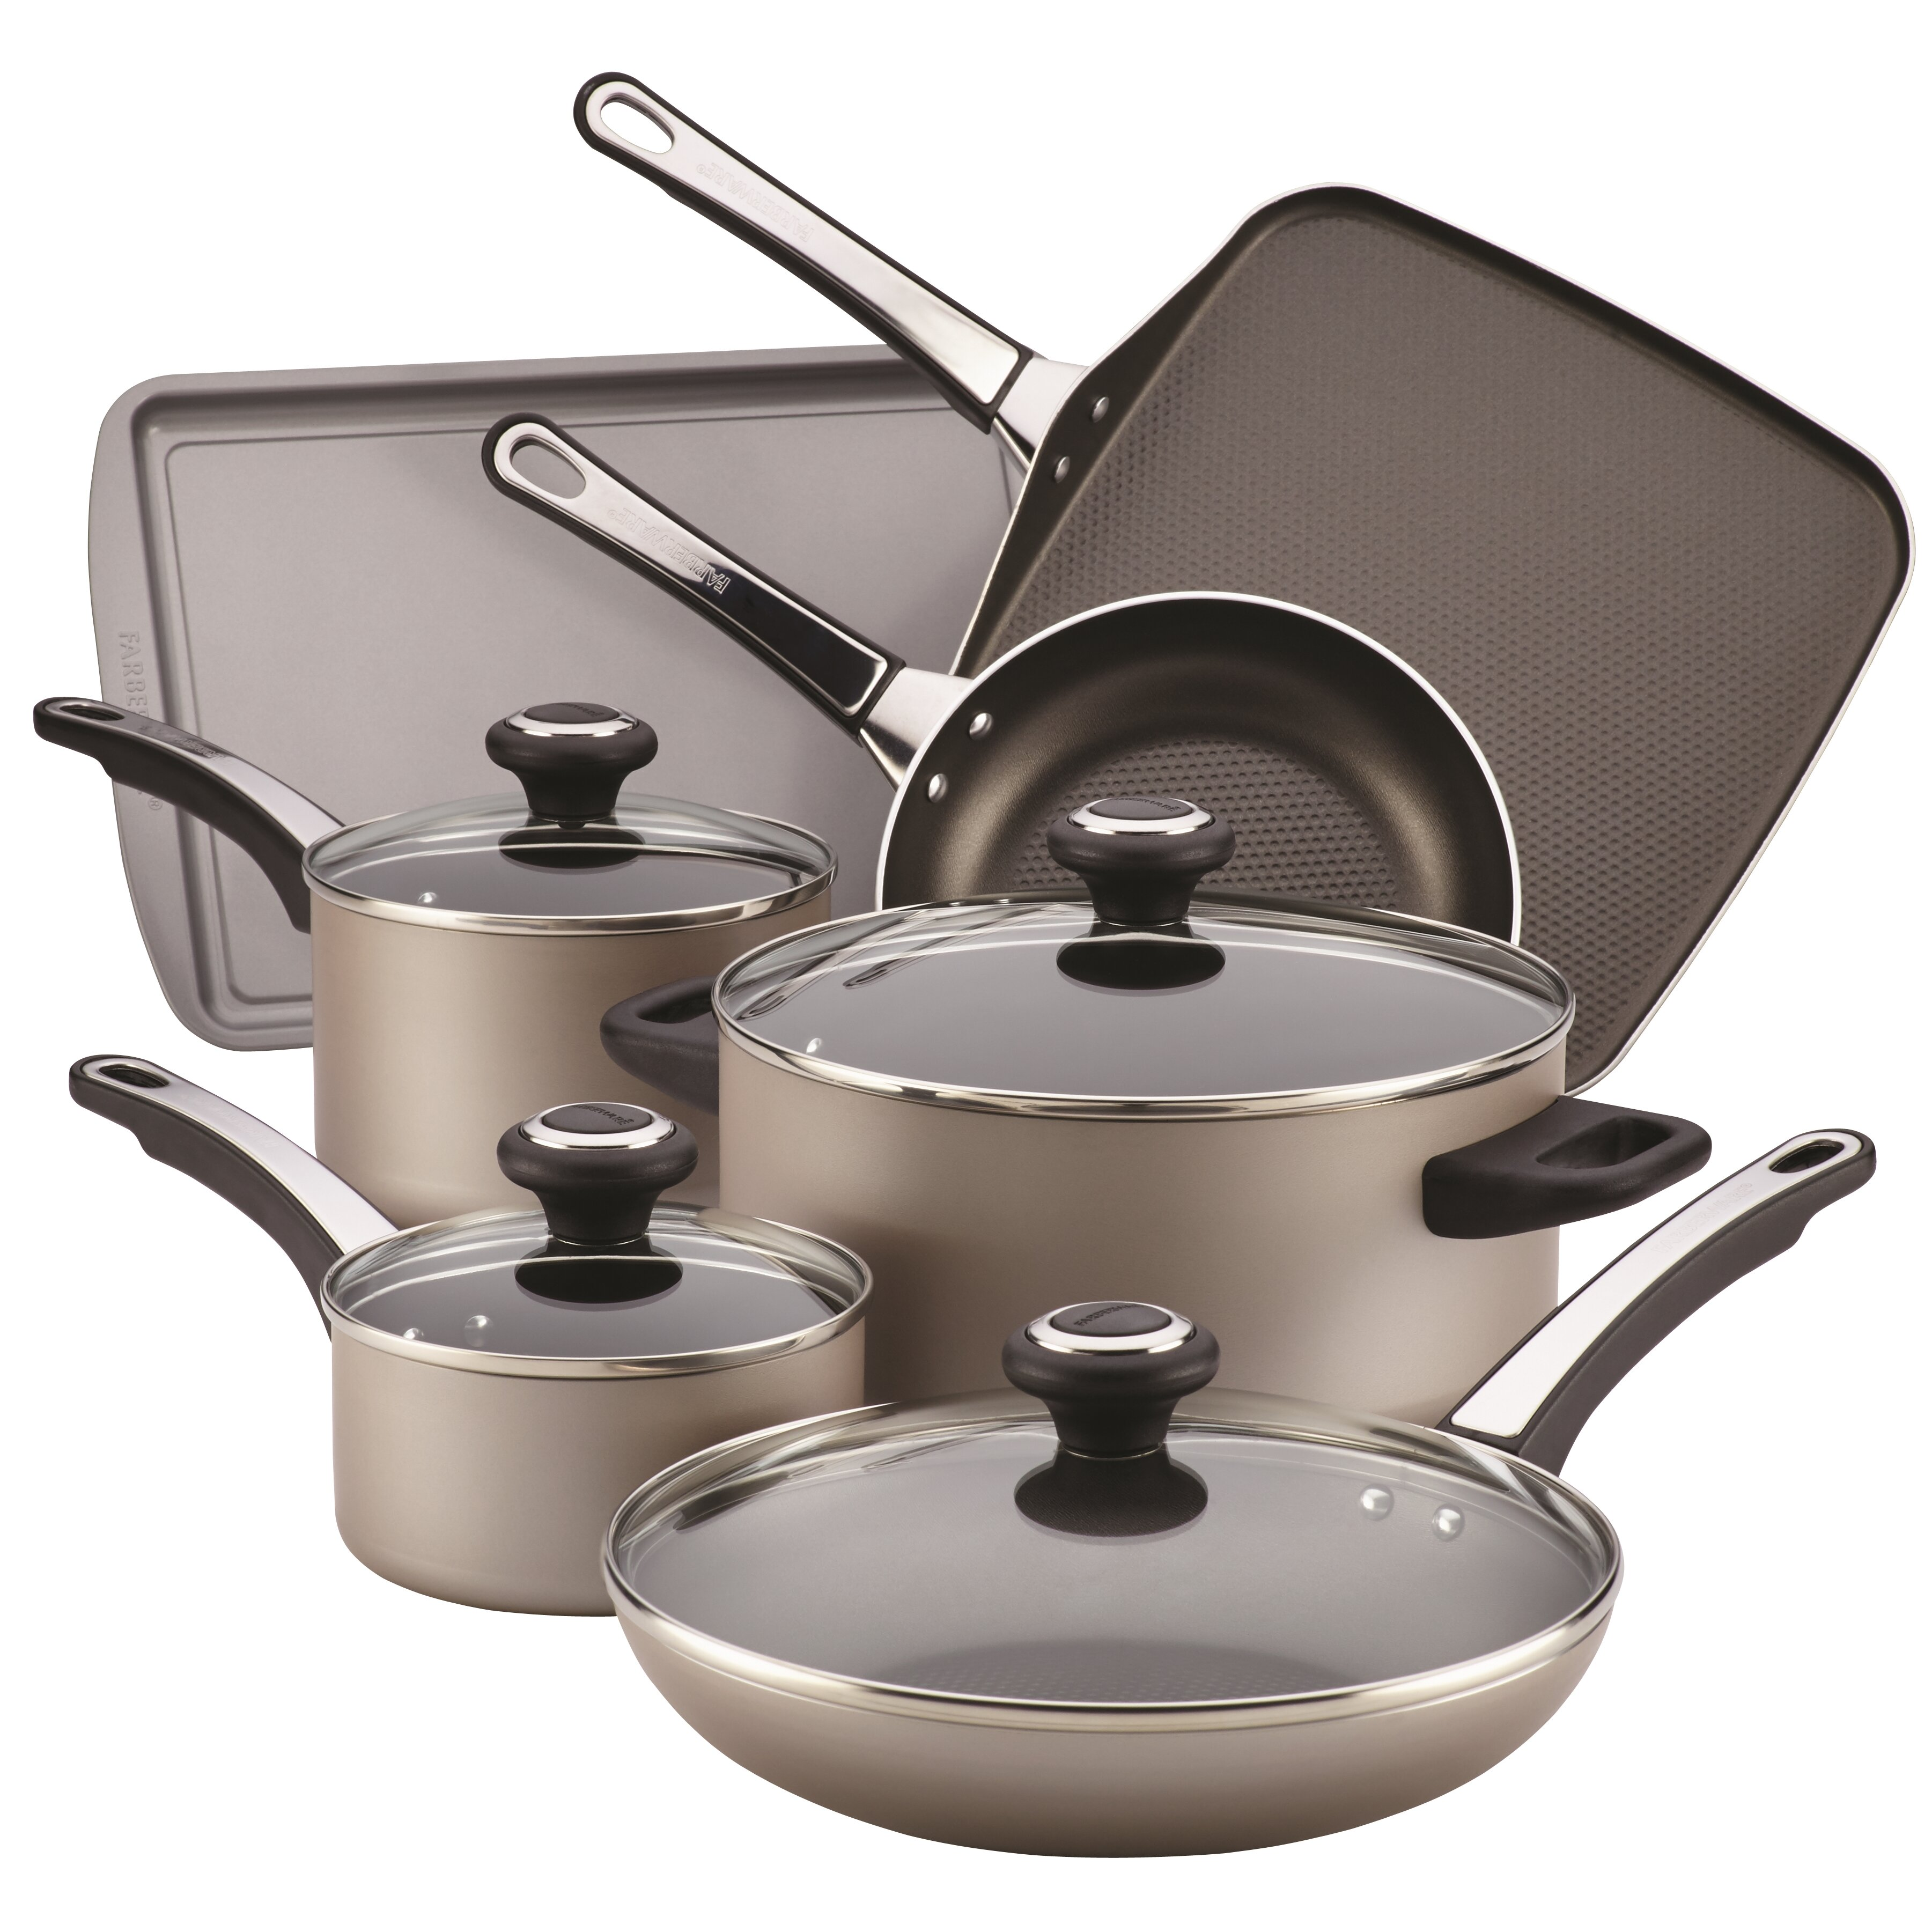 Kitchen Cookware ... 14 or More Piece Cookware Sets Farberware SKU ...